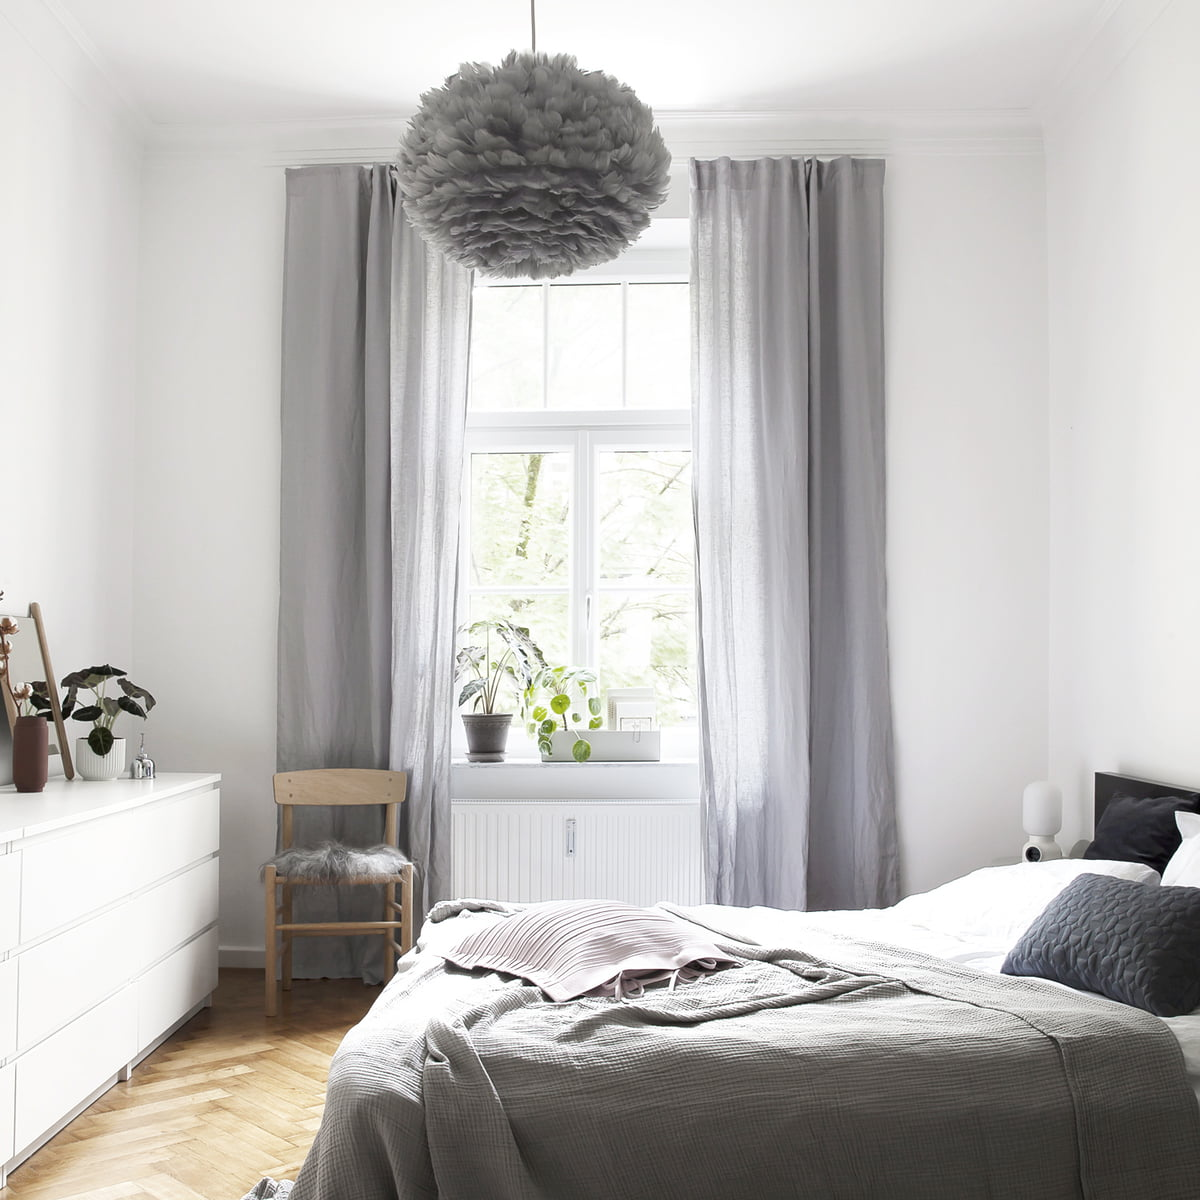 Light Grey Blue Bedroom Images Of Black Bedroom Furniture Bedroom Wallpaper And Curtains To Match Bedroom Bay Window Curtain Ideas: Eos Light Grey By Umage In The Shop